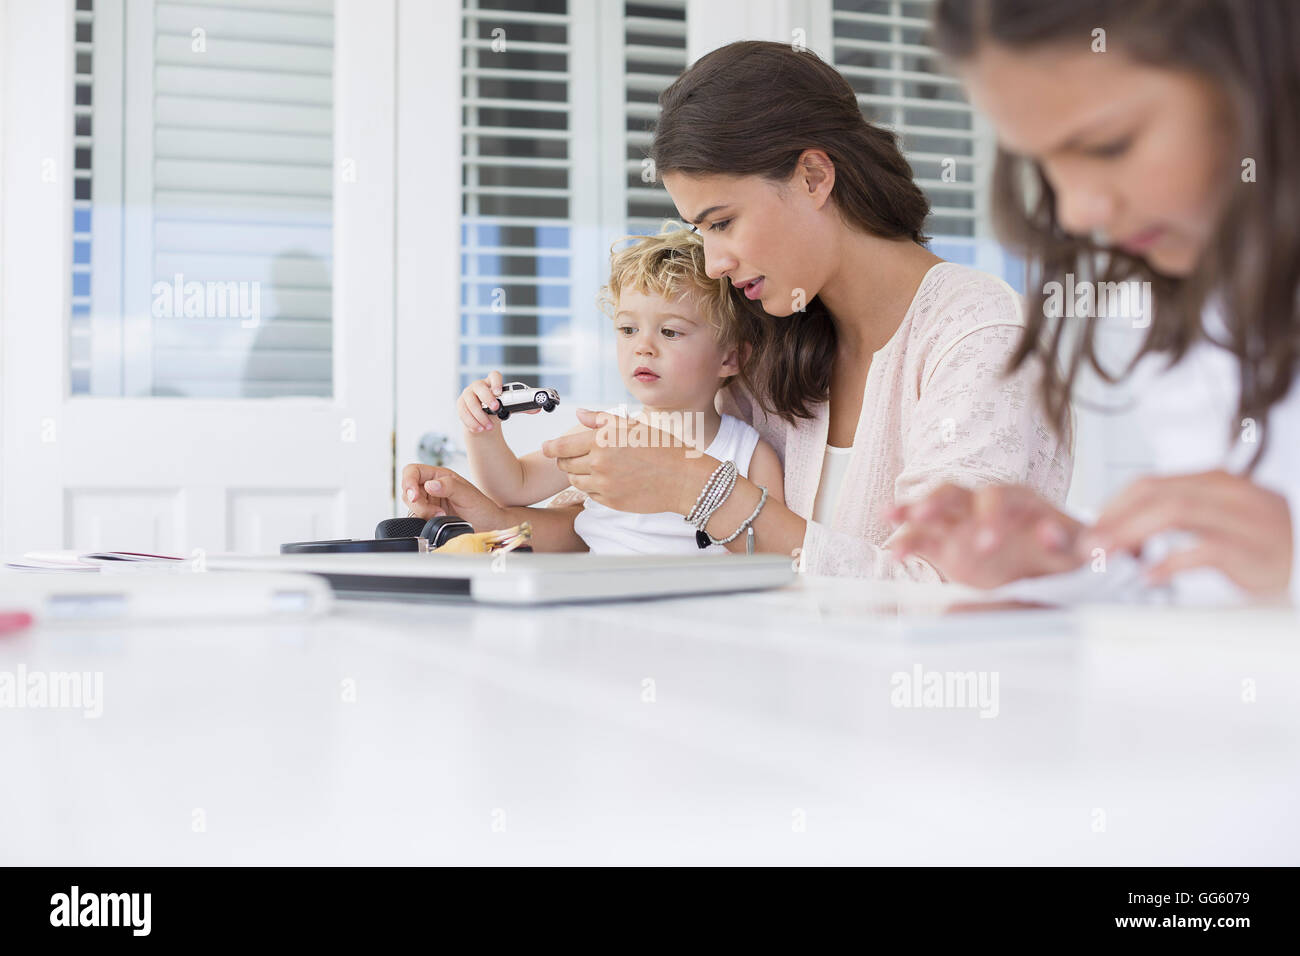 Mother playing with children at home - Stock Image